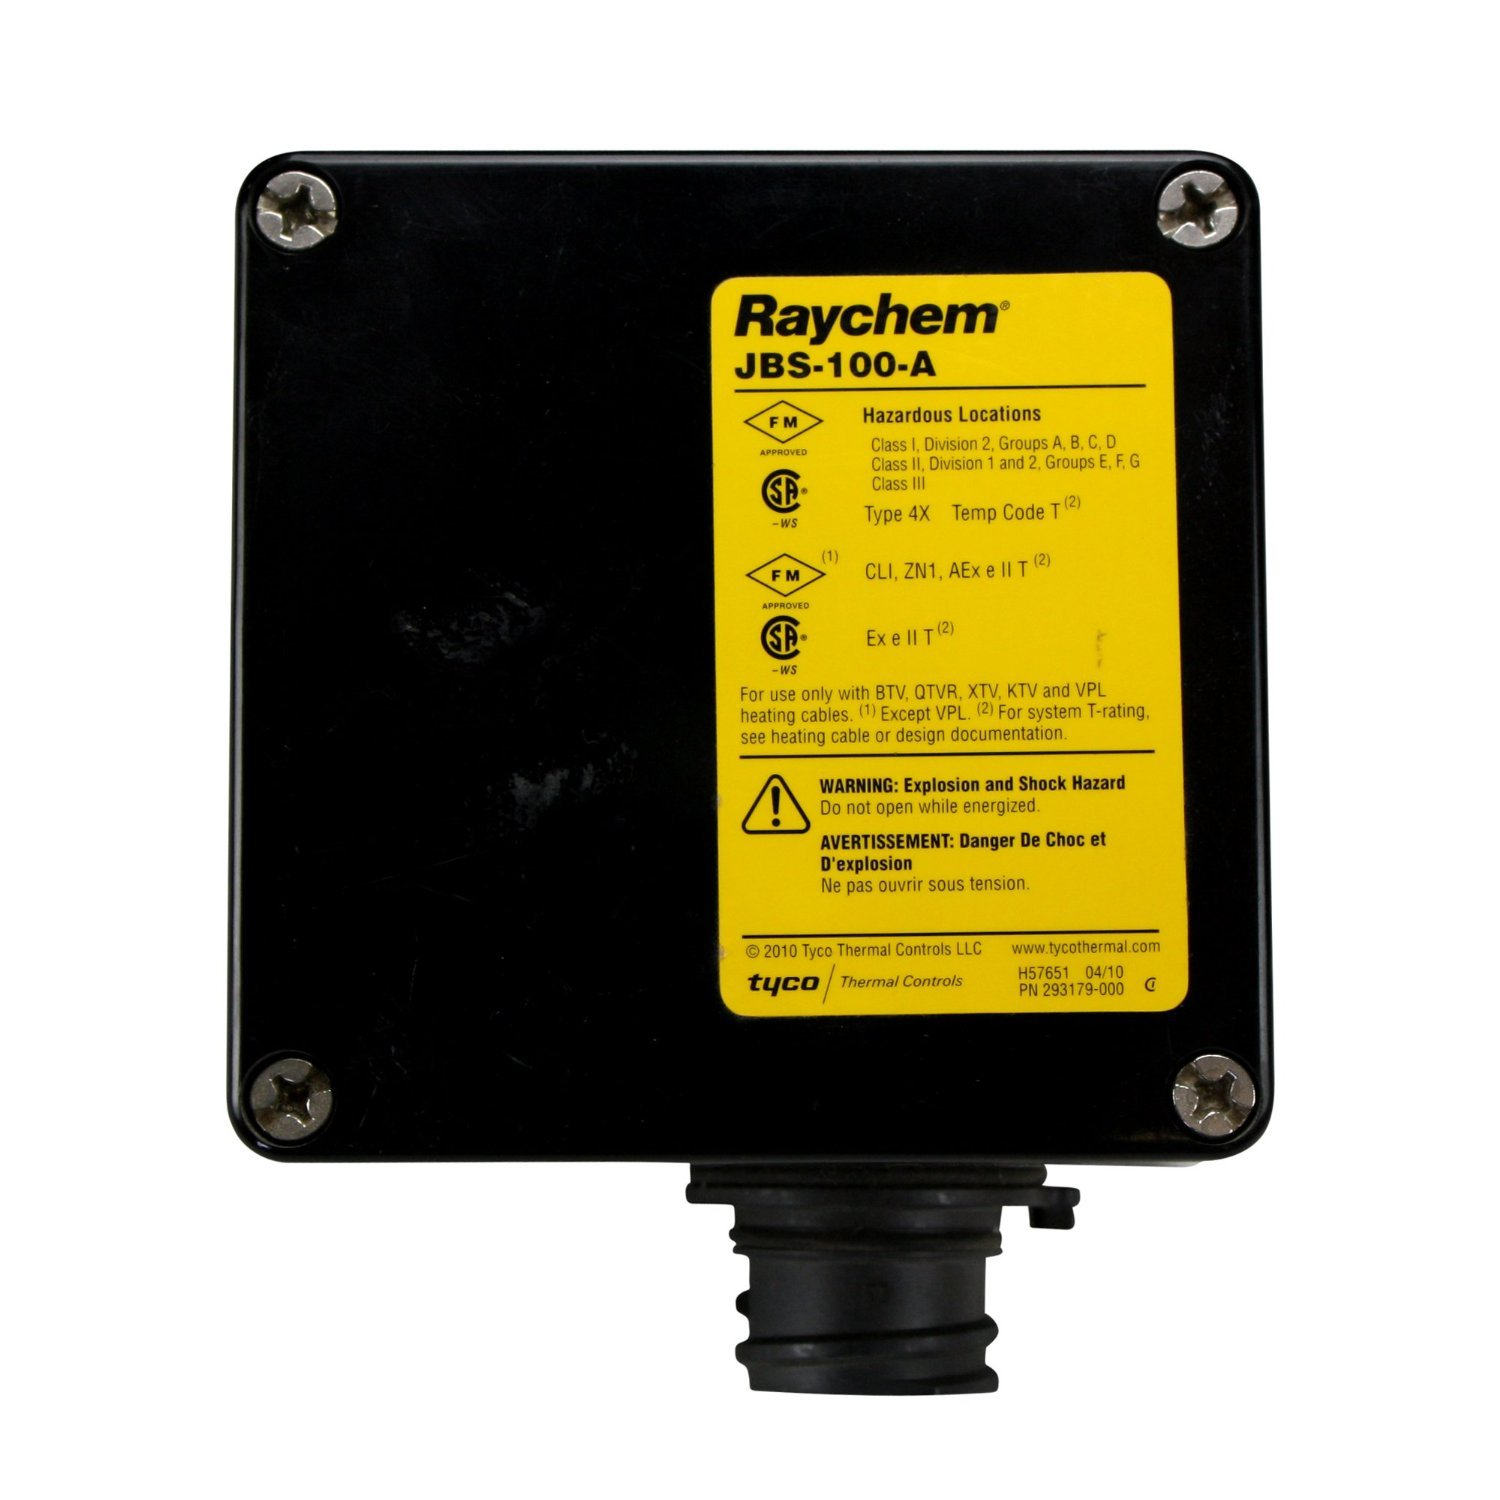 Raychem Tyco Jbs-100-A Heating Cable Power Connection Junction Box